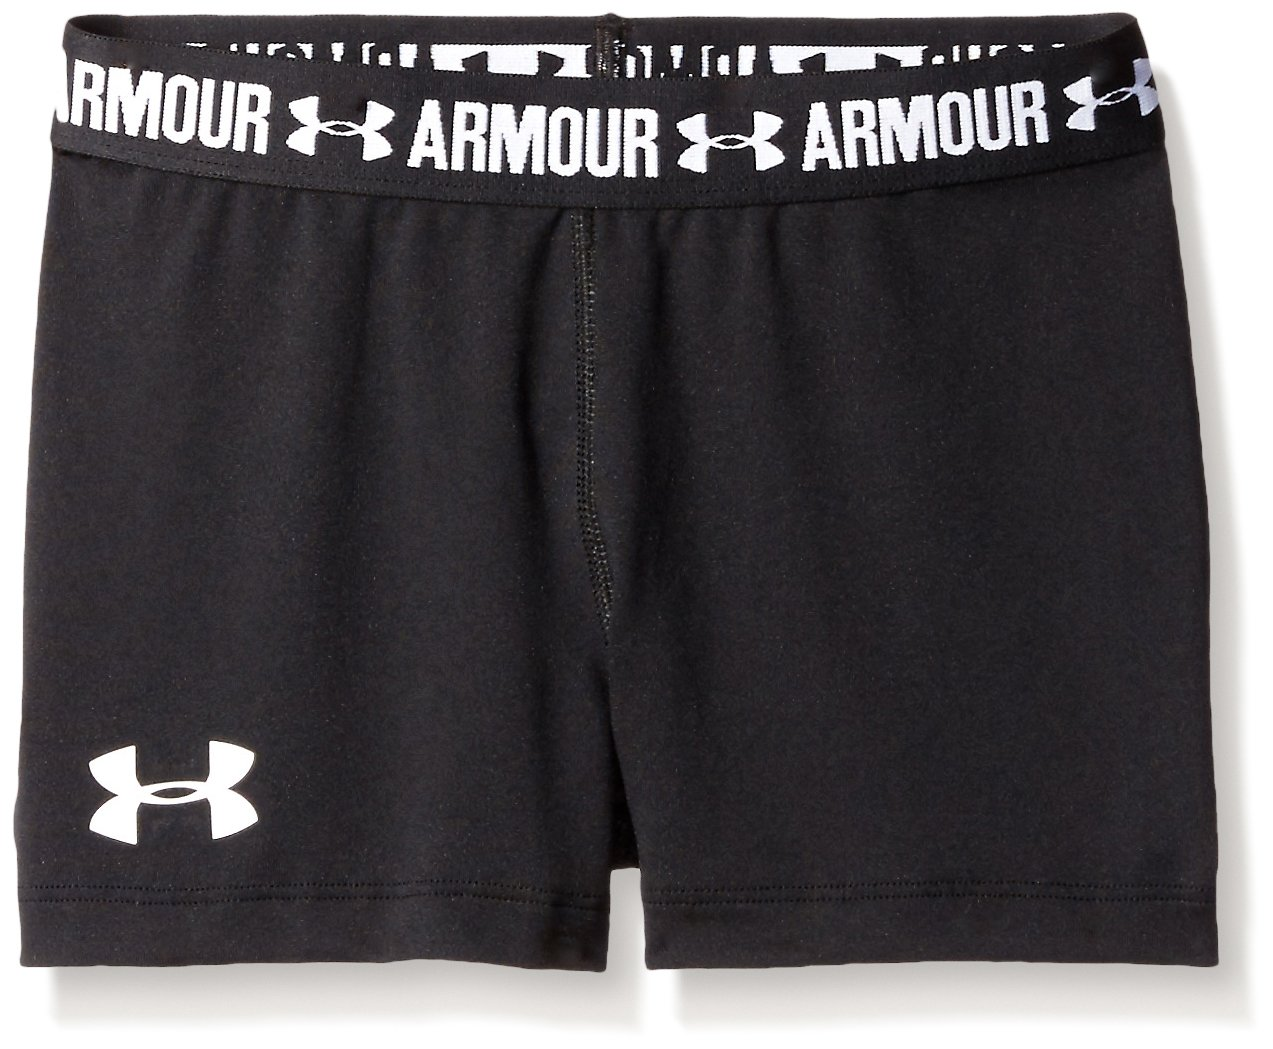 Under Armour Armour Shorty, Pantaloncino Bambina 1271025